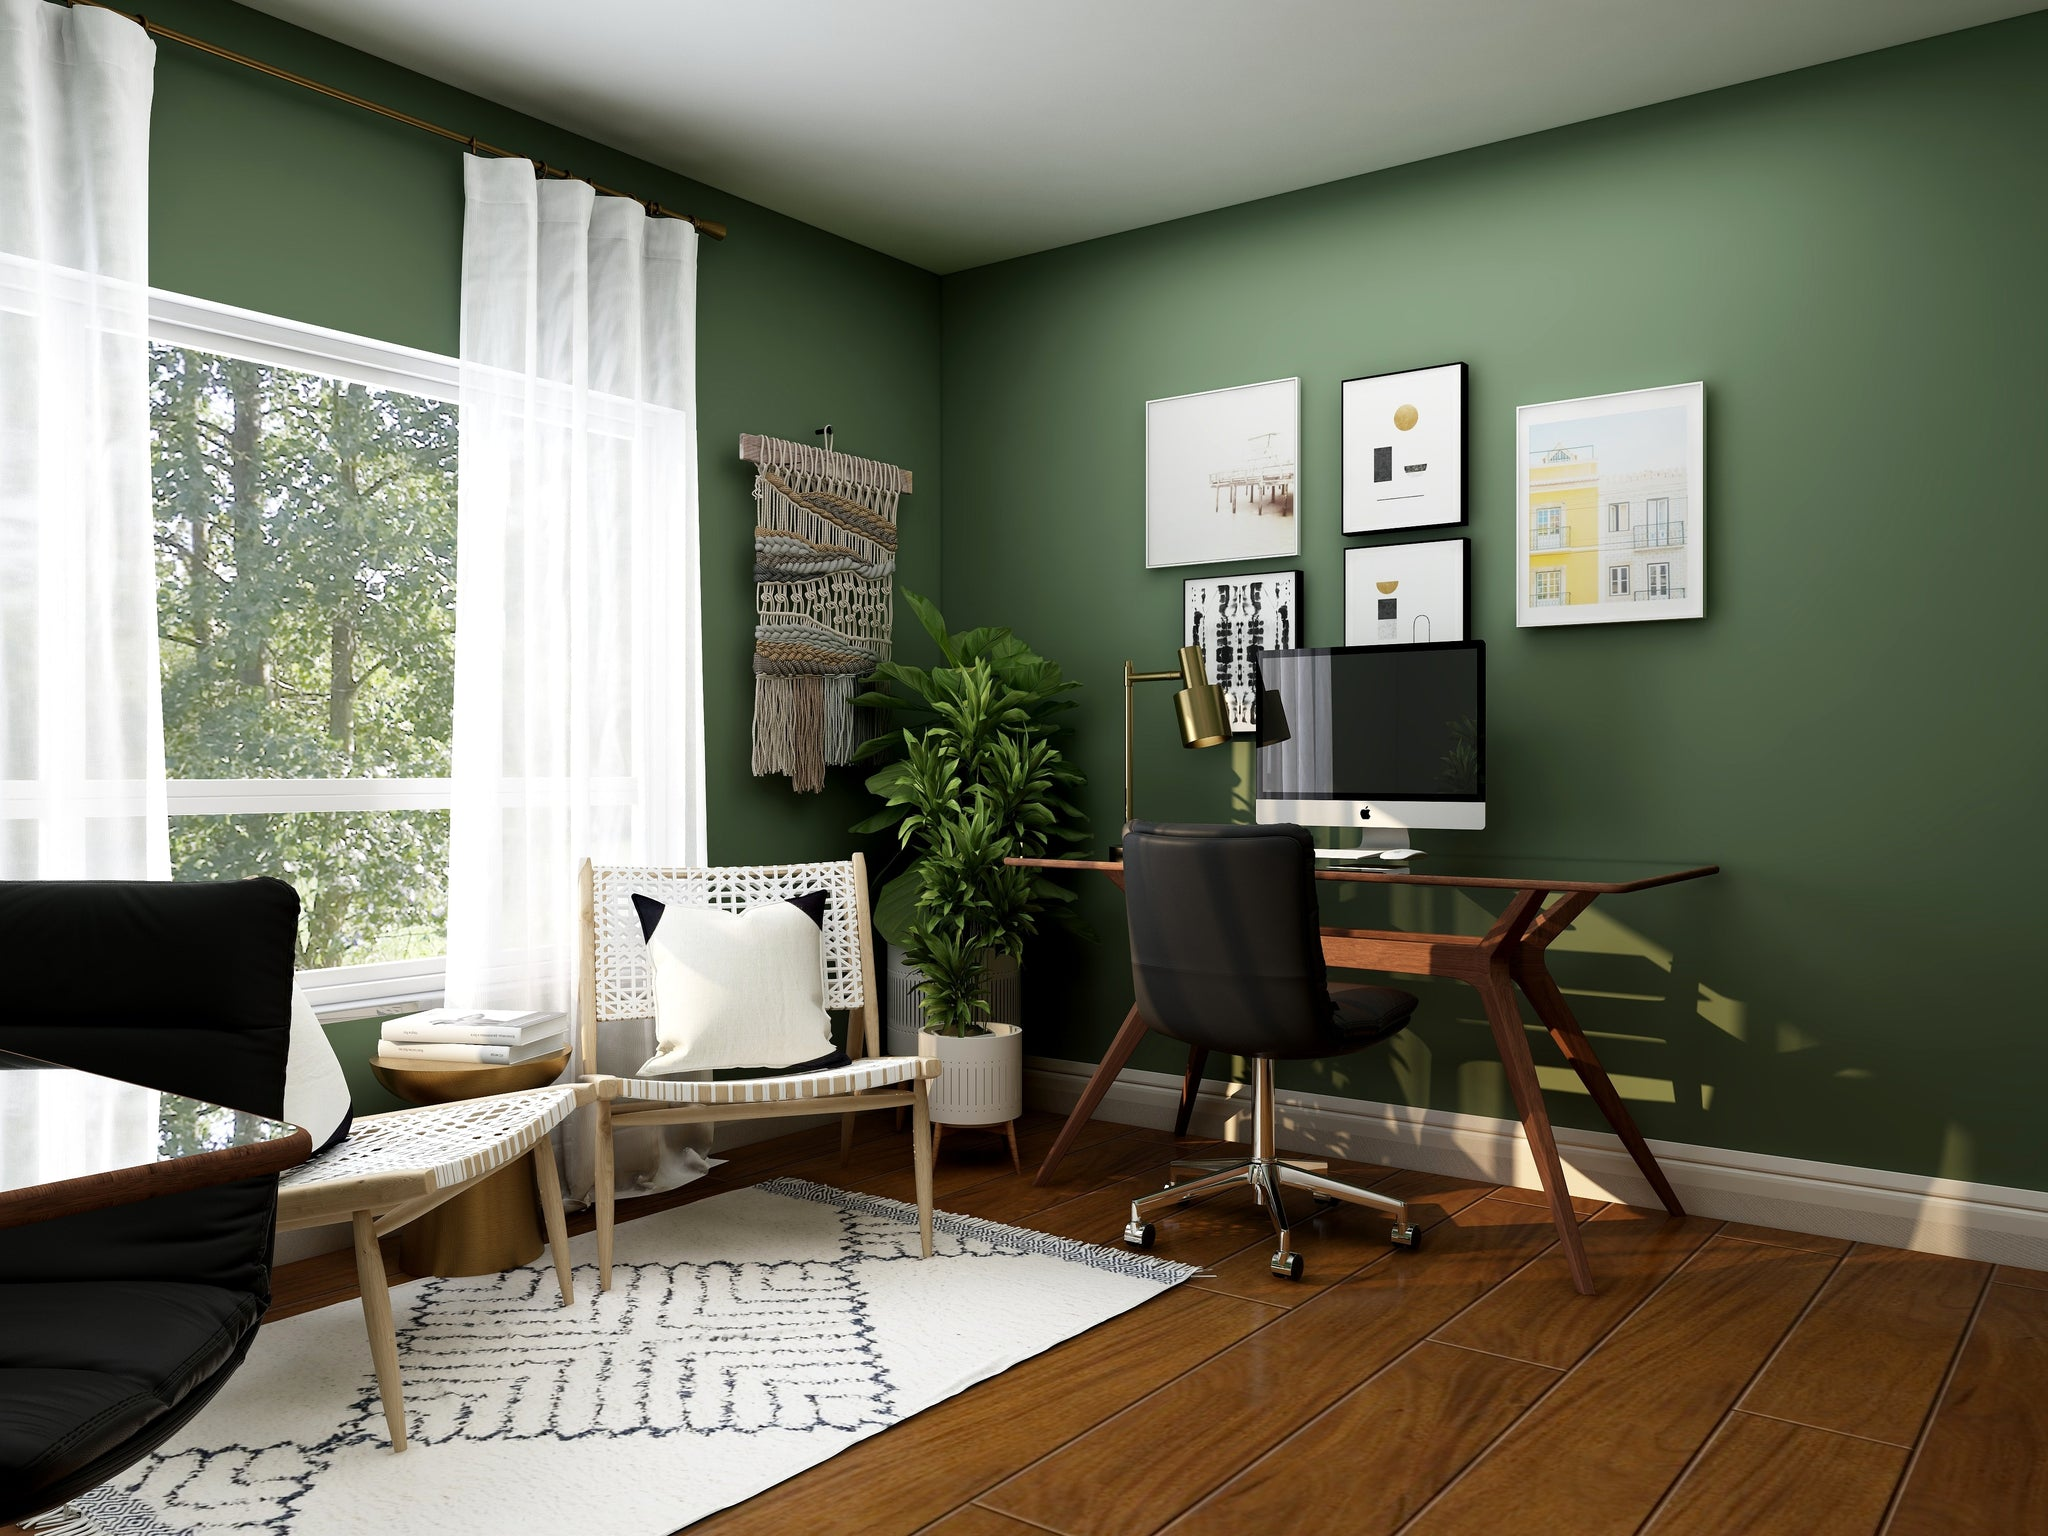 The Wellbeing Interior Trends to Know